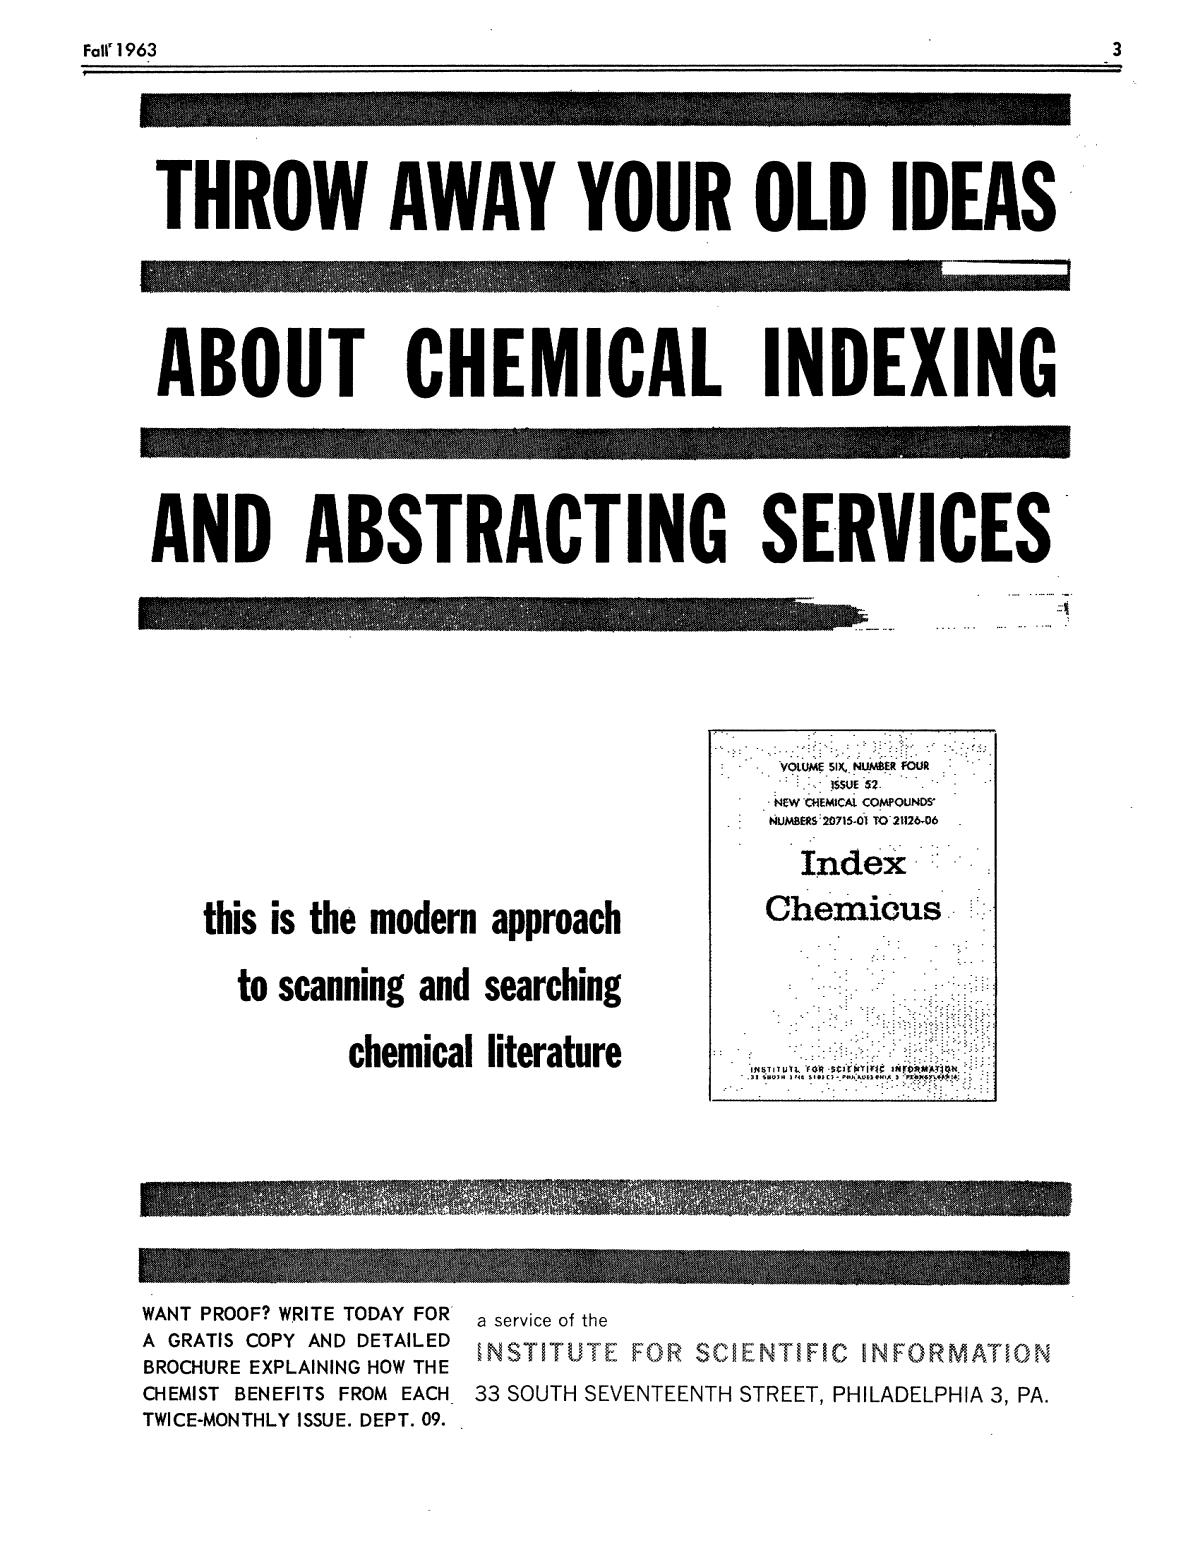 Chemical Literature, Volume 15, Number 3, Fall 1963                                                                                                      3